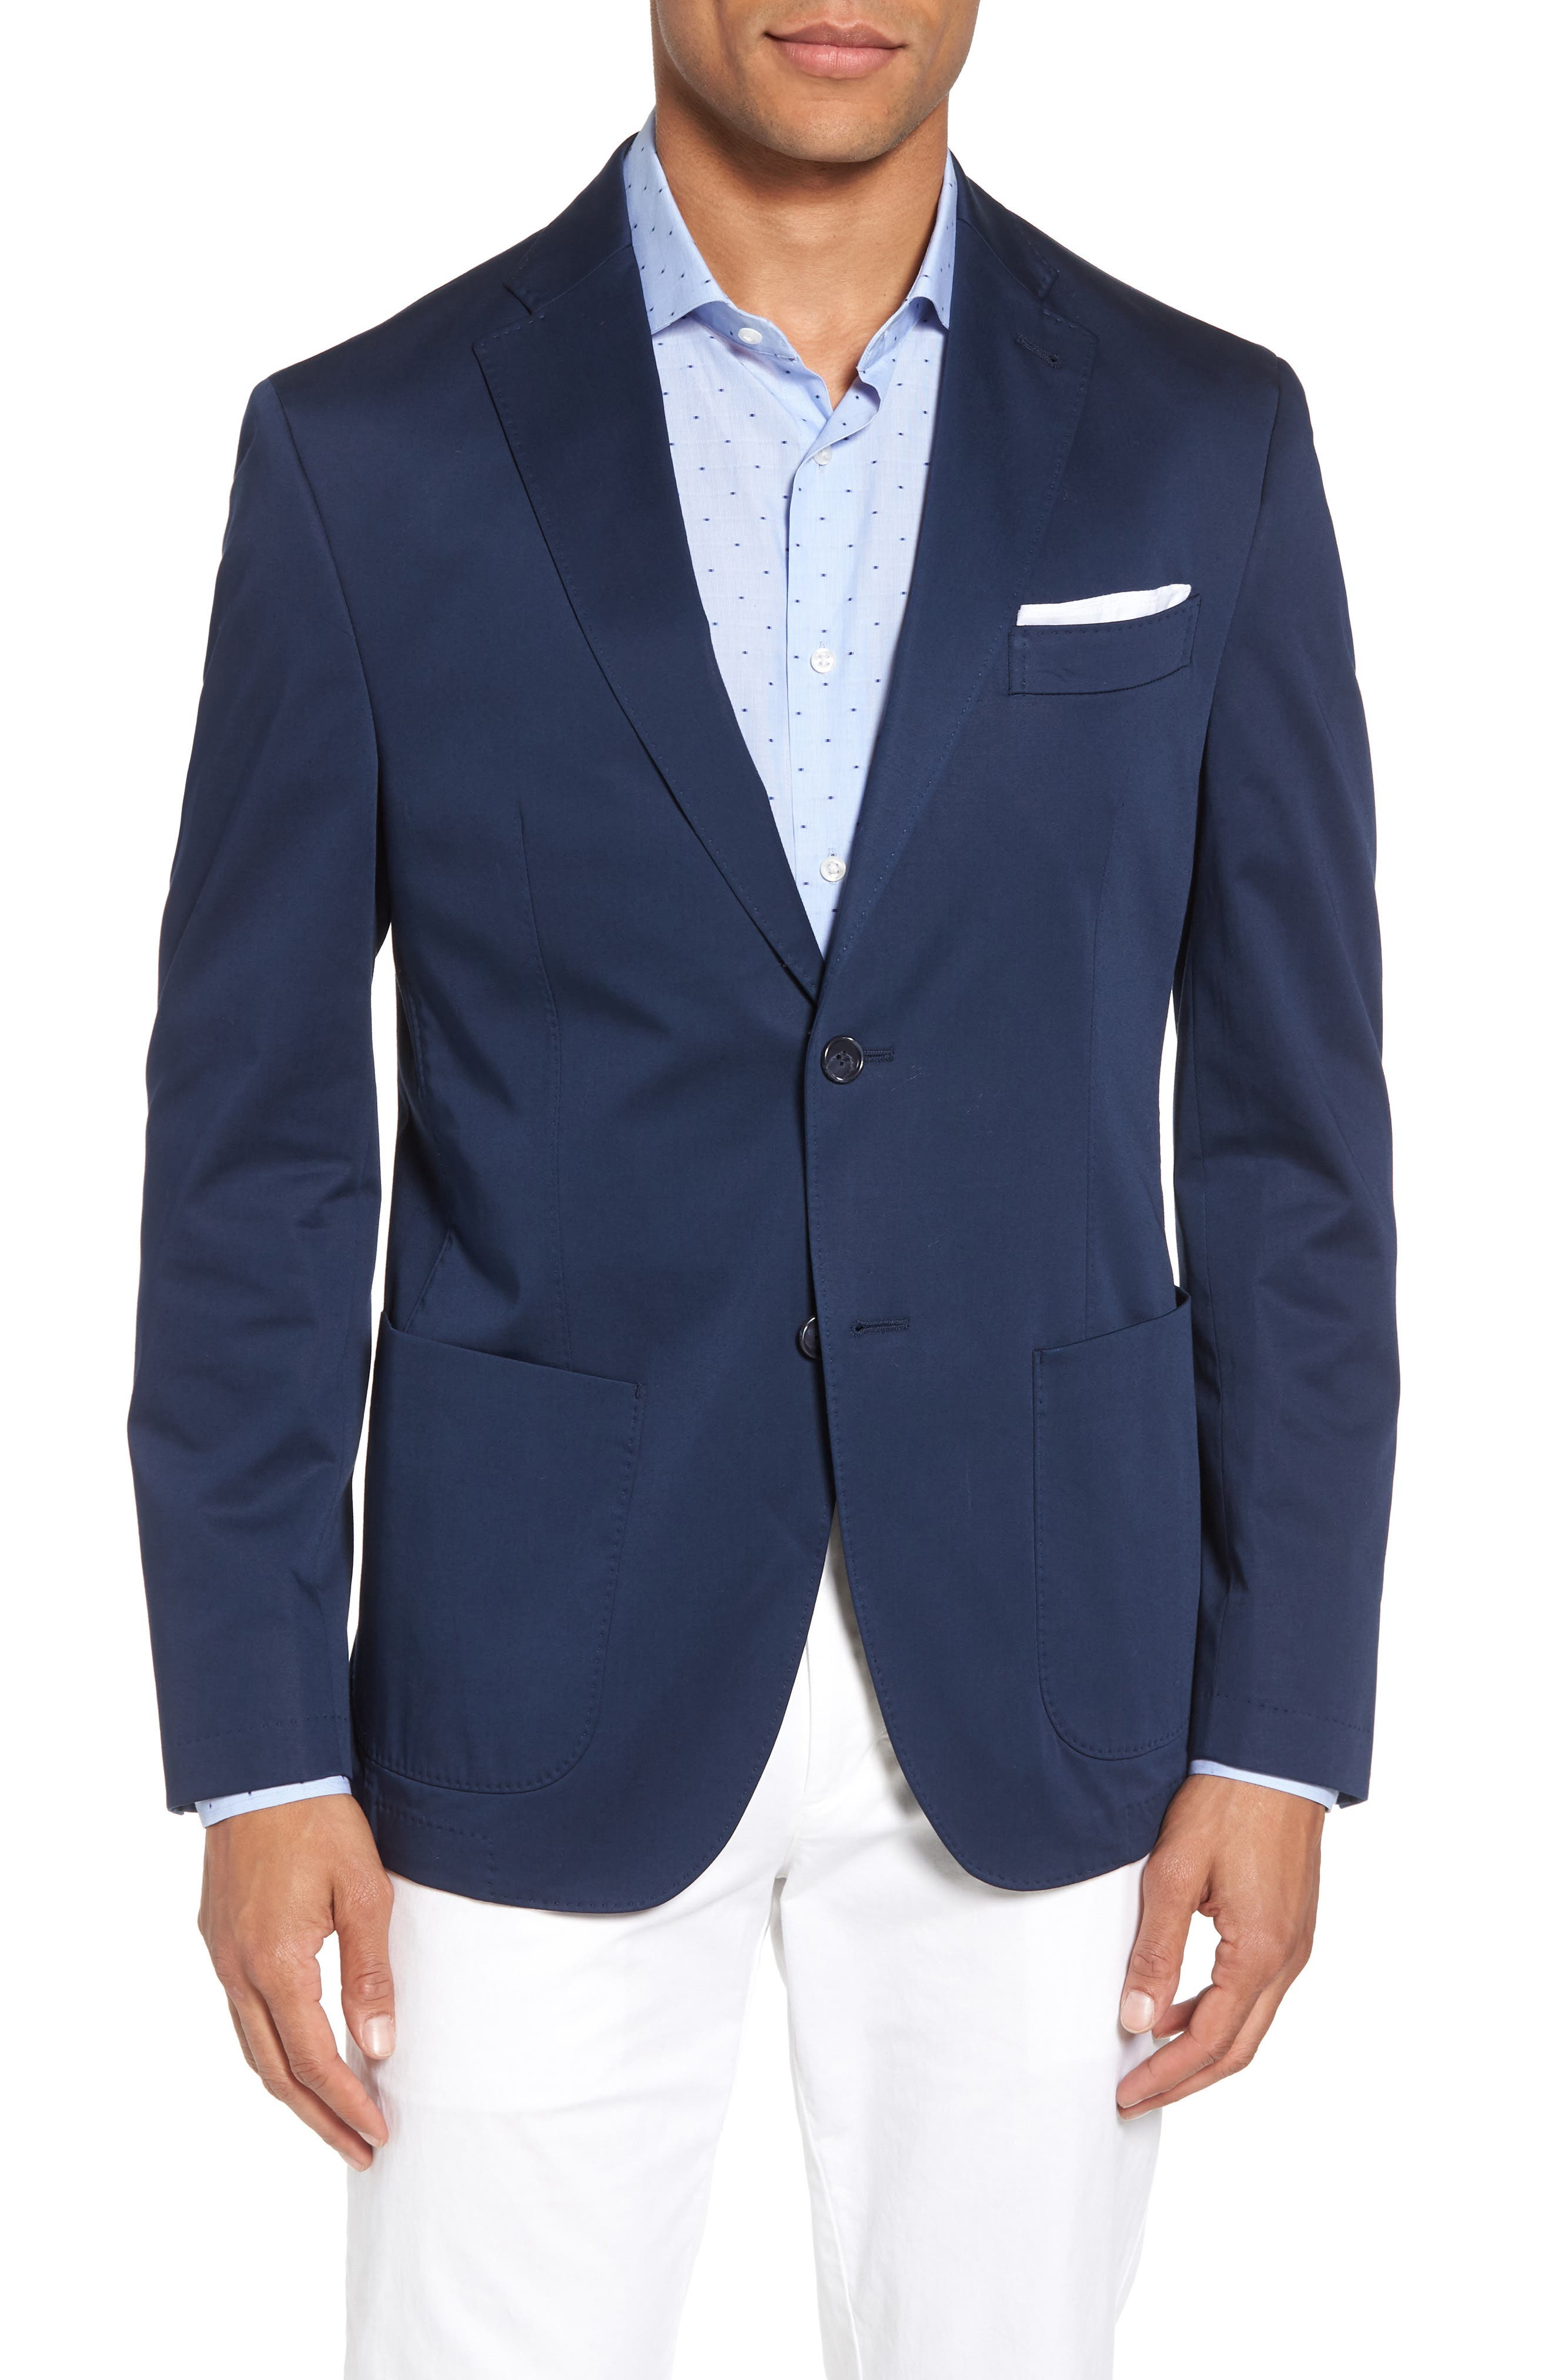 Alternate Image 1 Selected - JKT New York Trent Trim Fit Stretch Cotton Blazer